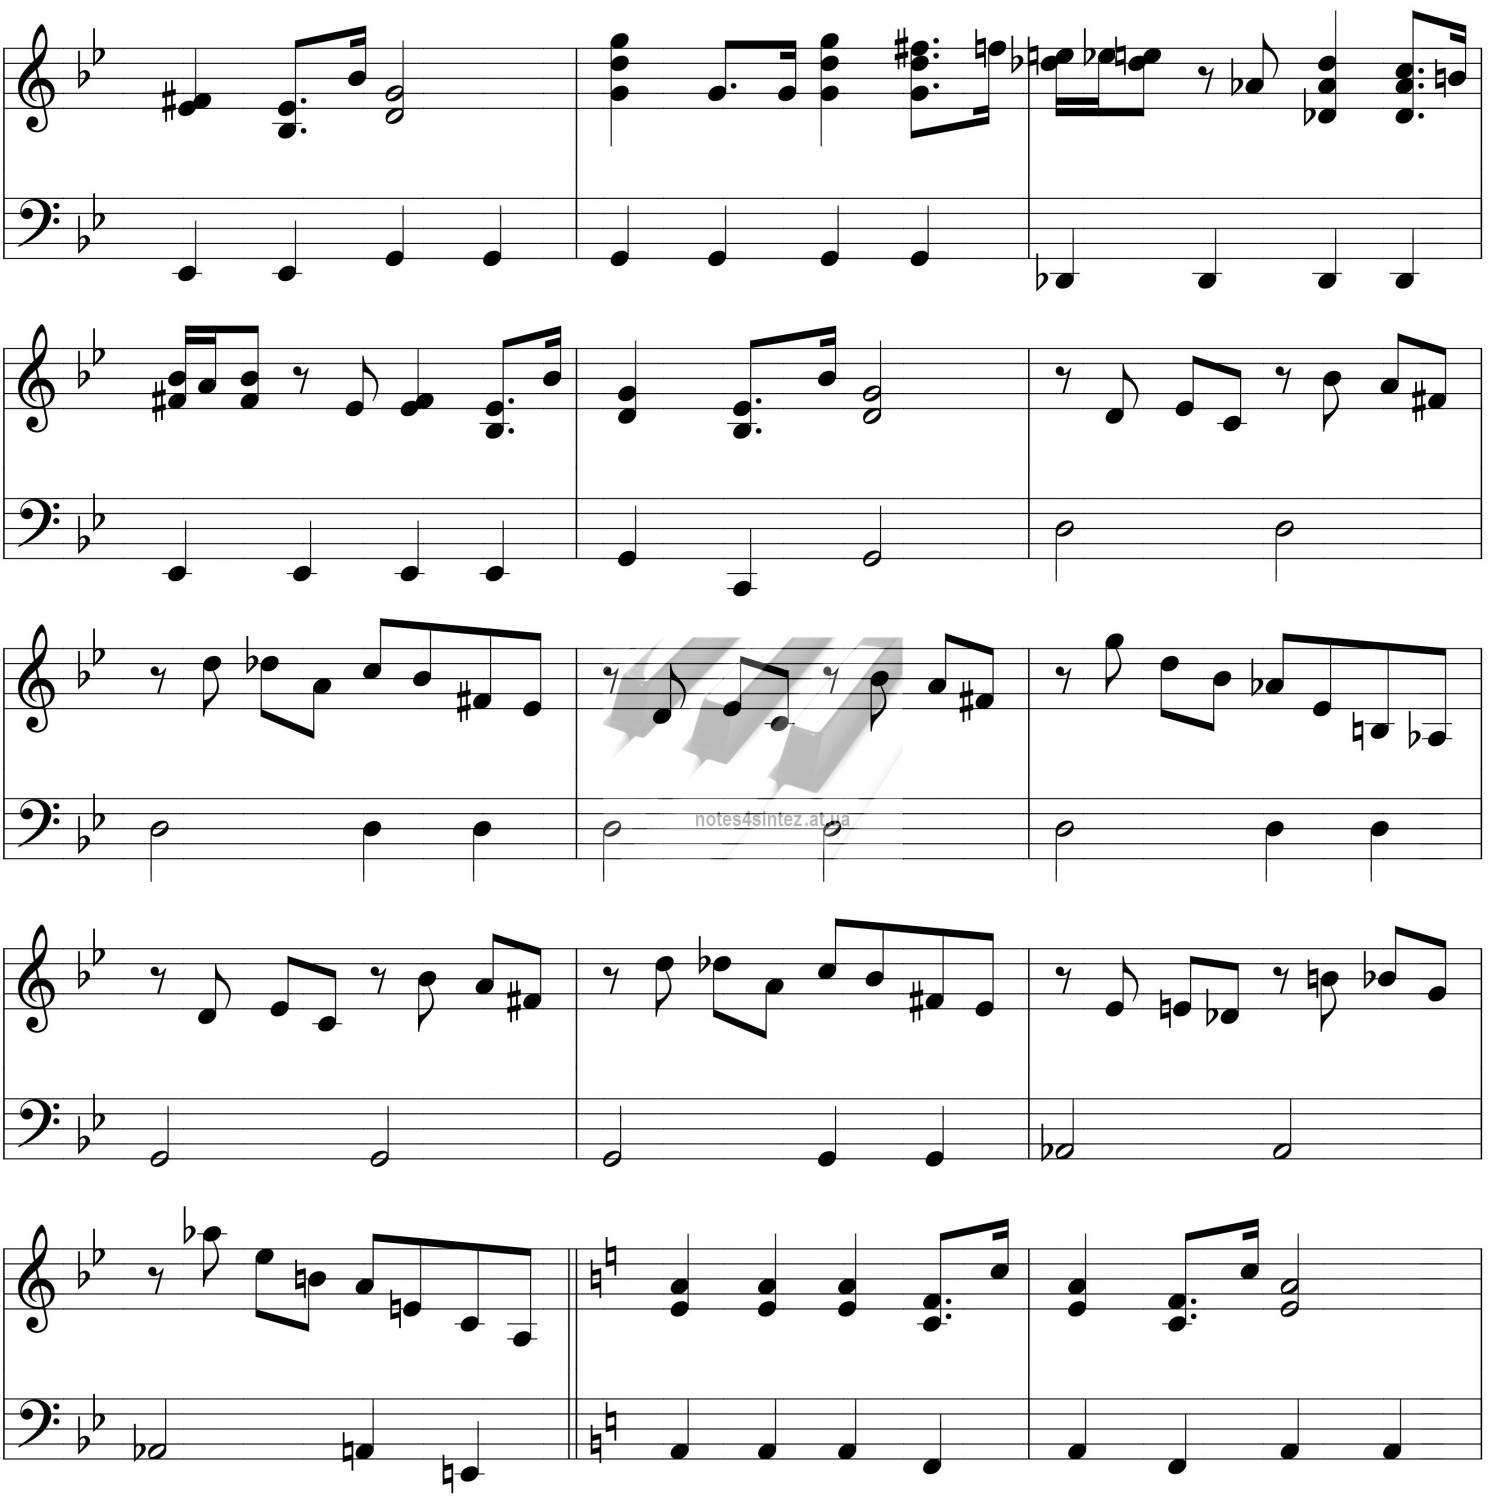 Sheet Music For Imperial March On Piano: Зарубежные